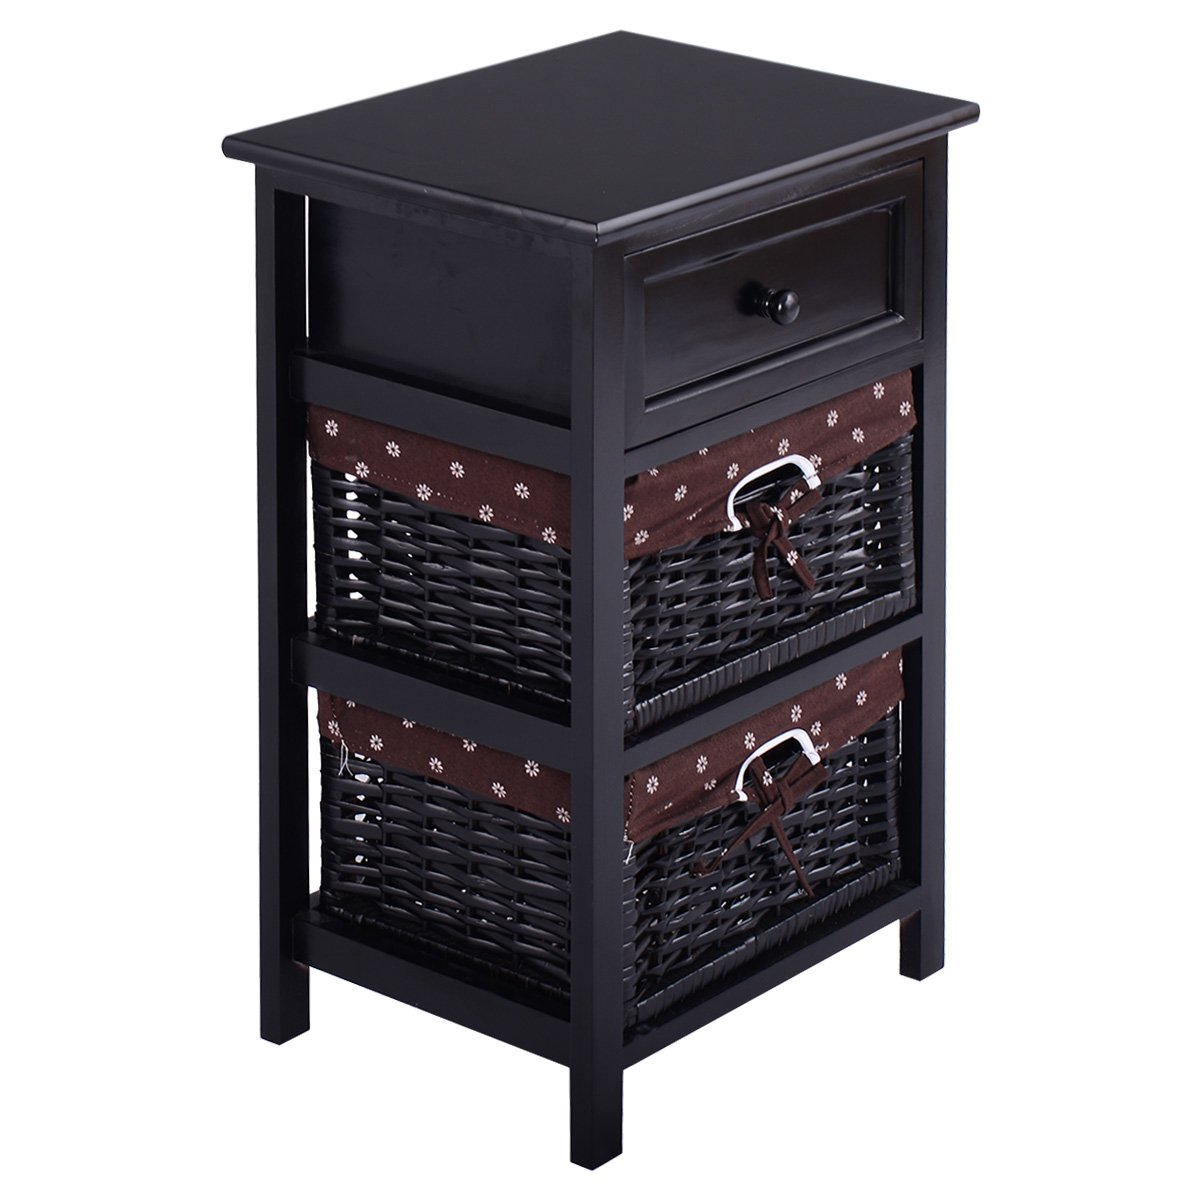 Giantex Wooden Nightstand 3 Tiers W/ 2 Baskets and 1 Drawer Bedside Sofa Storage Organizer for Home Living Room Bedroom End Table (1, Black) by Giantex